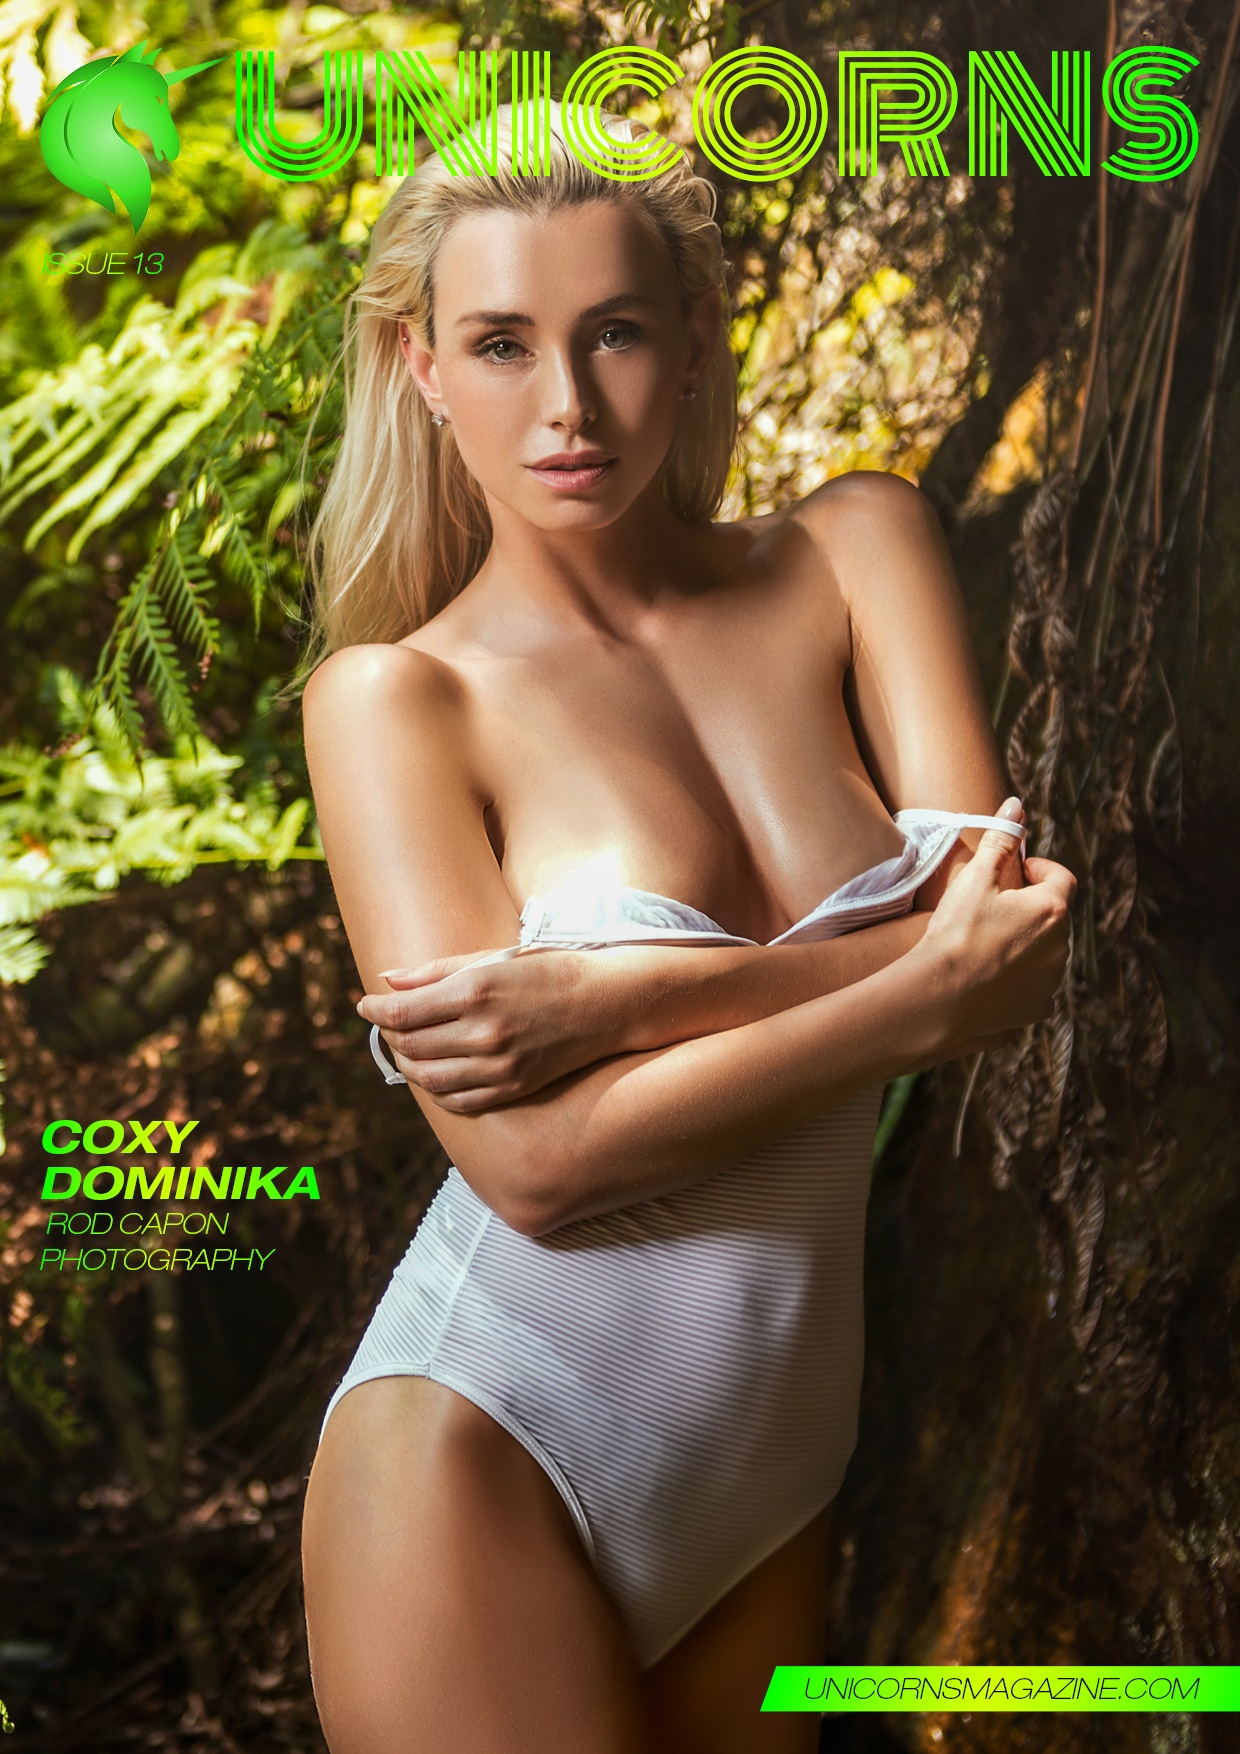 Unicorns Magazine - September 2020 - Svenja 2